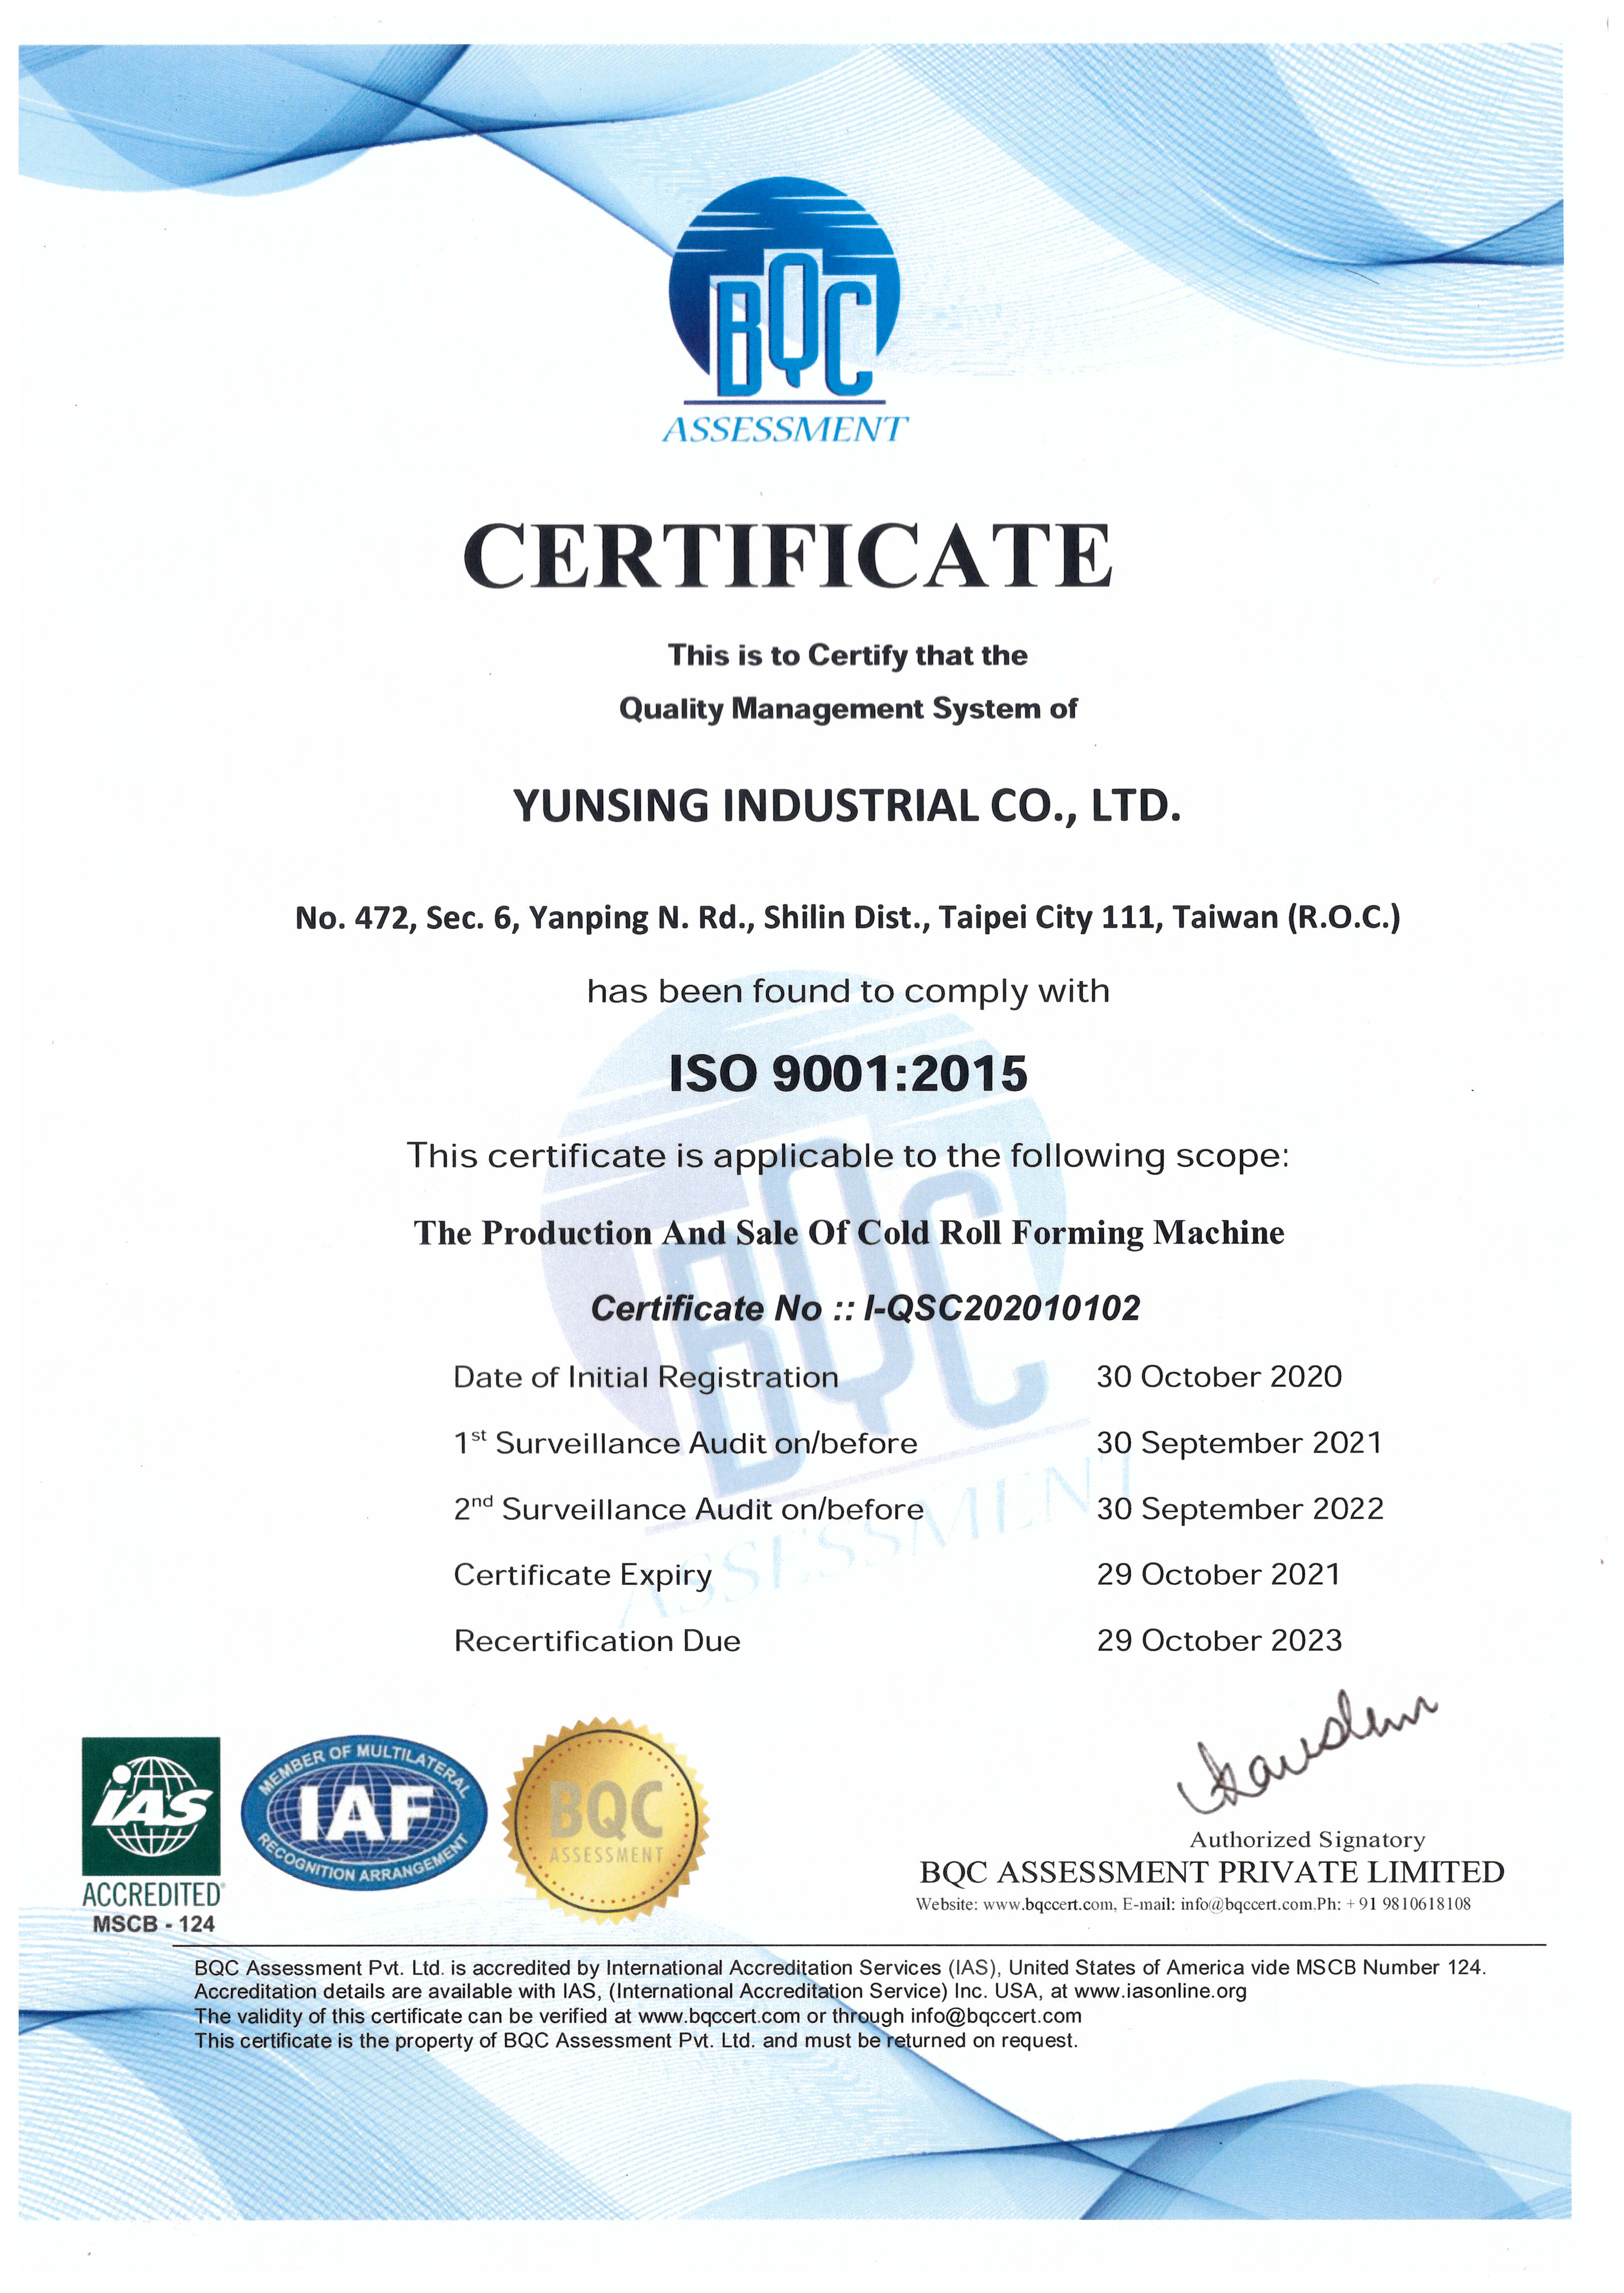 ISO 9001:2015 certification of YunSing